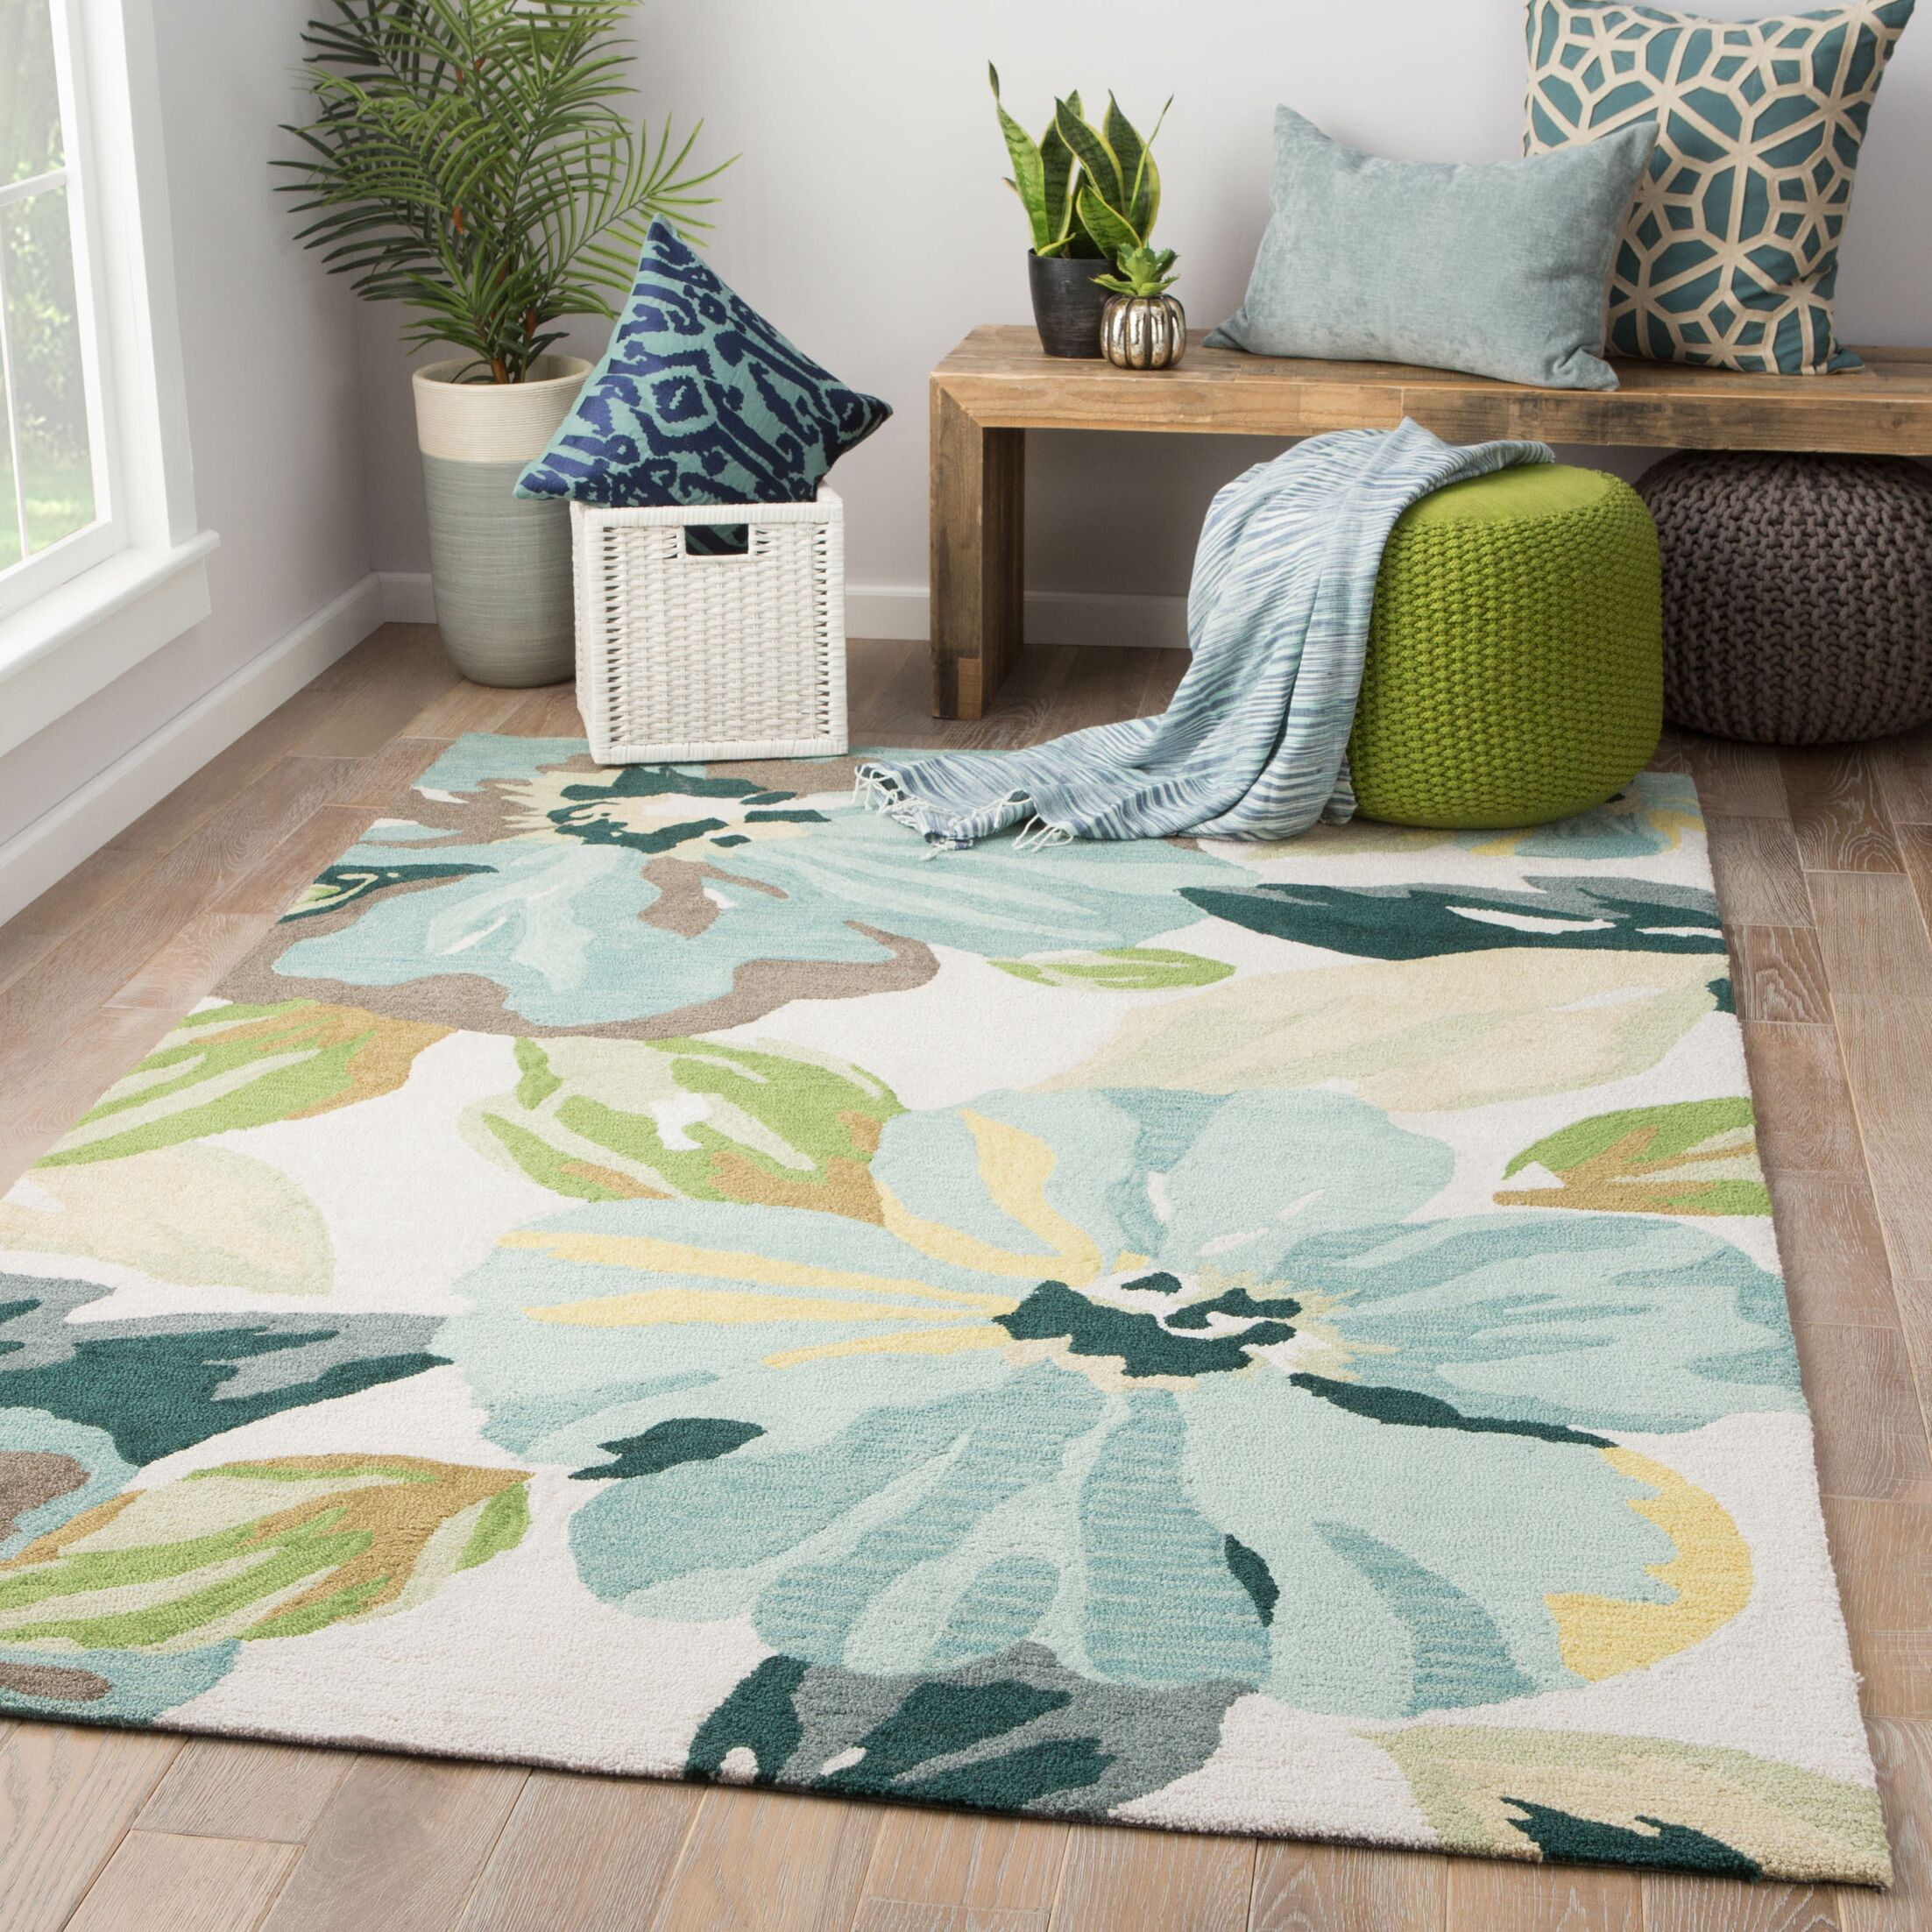 Isidore Hand Tufted Blue/Green Area Rug Rug Size: Rectangle 5' x 7'6